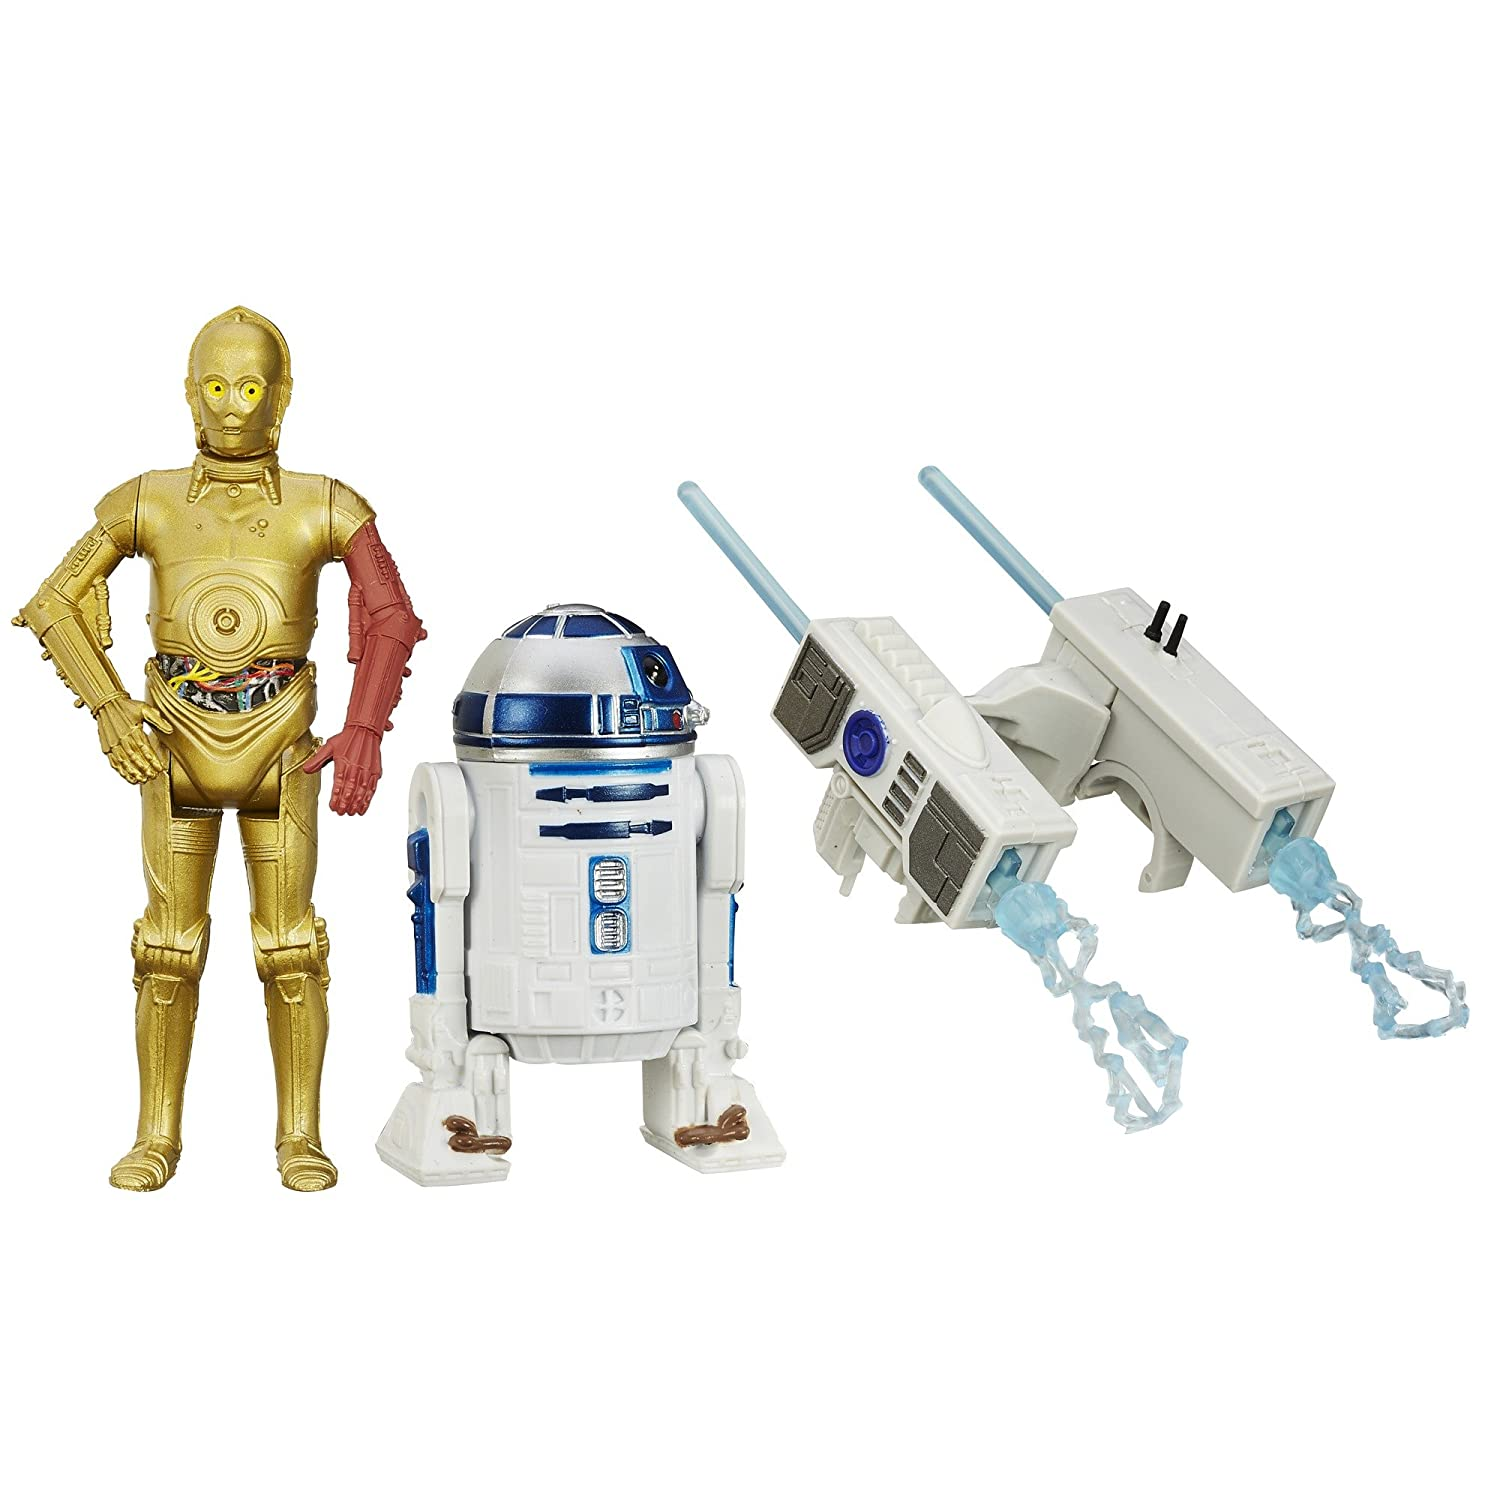 Star Wars El Despertar de la Fuerza Figura Snow Mission R D